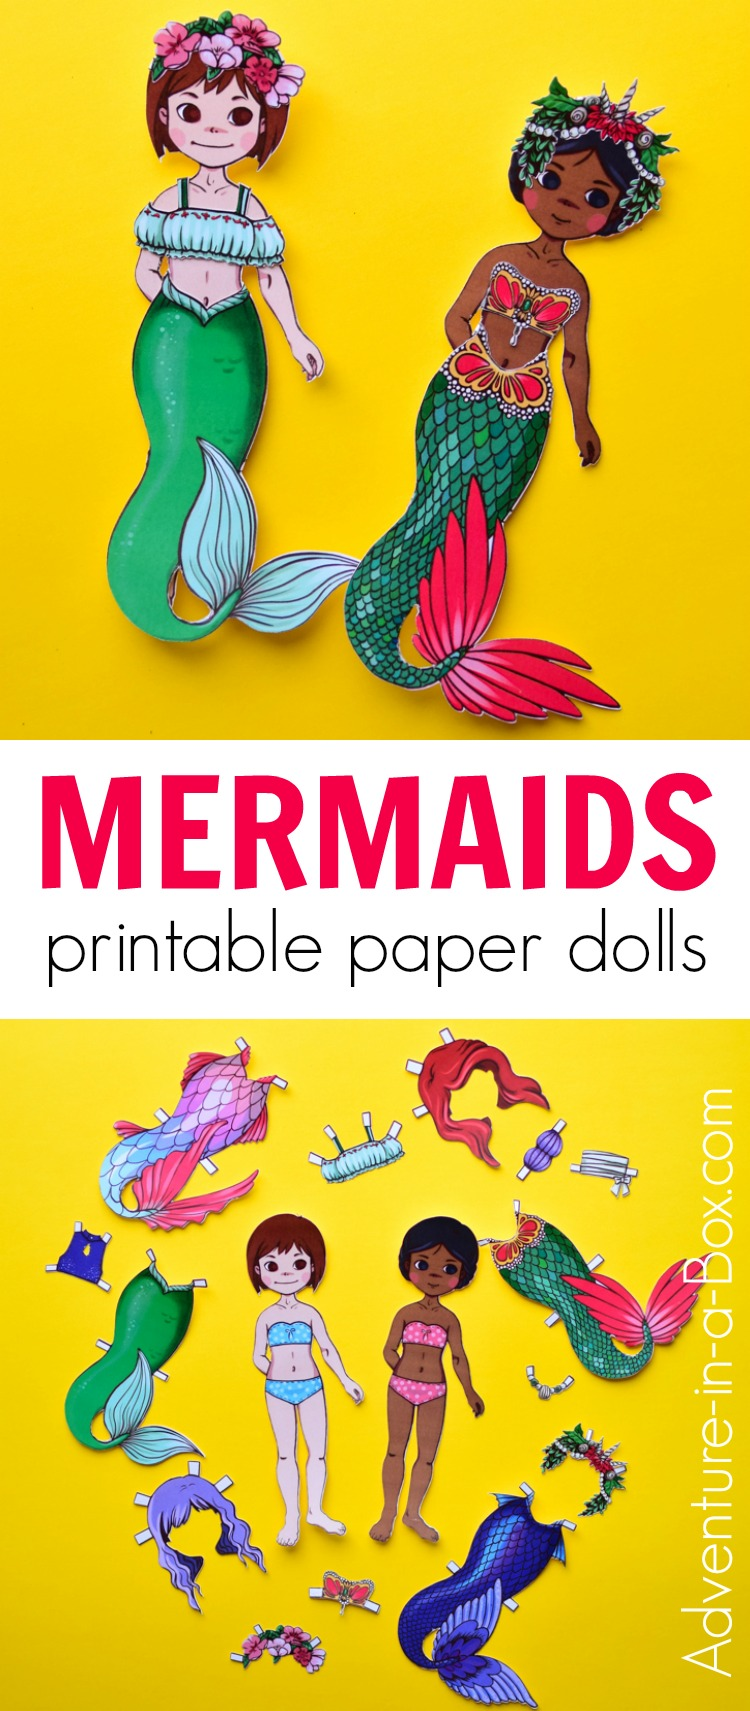 Mermaid Paper Dolls With Printable Templates Adventure In A Box